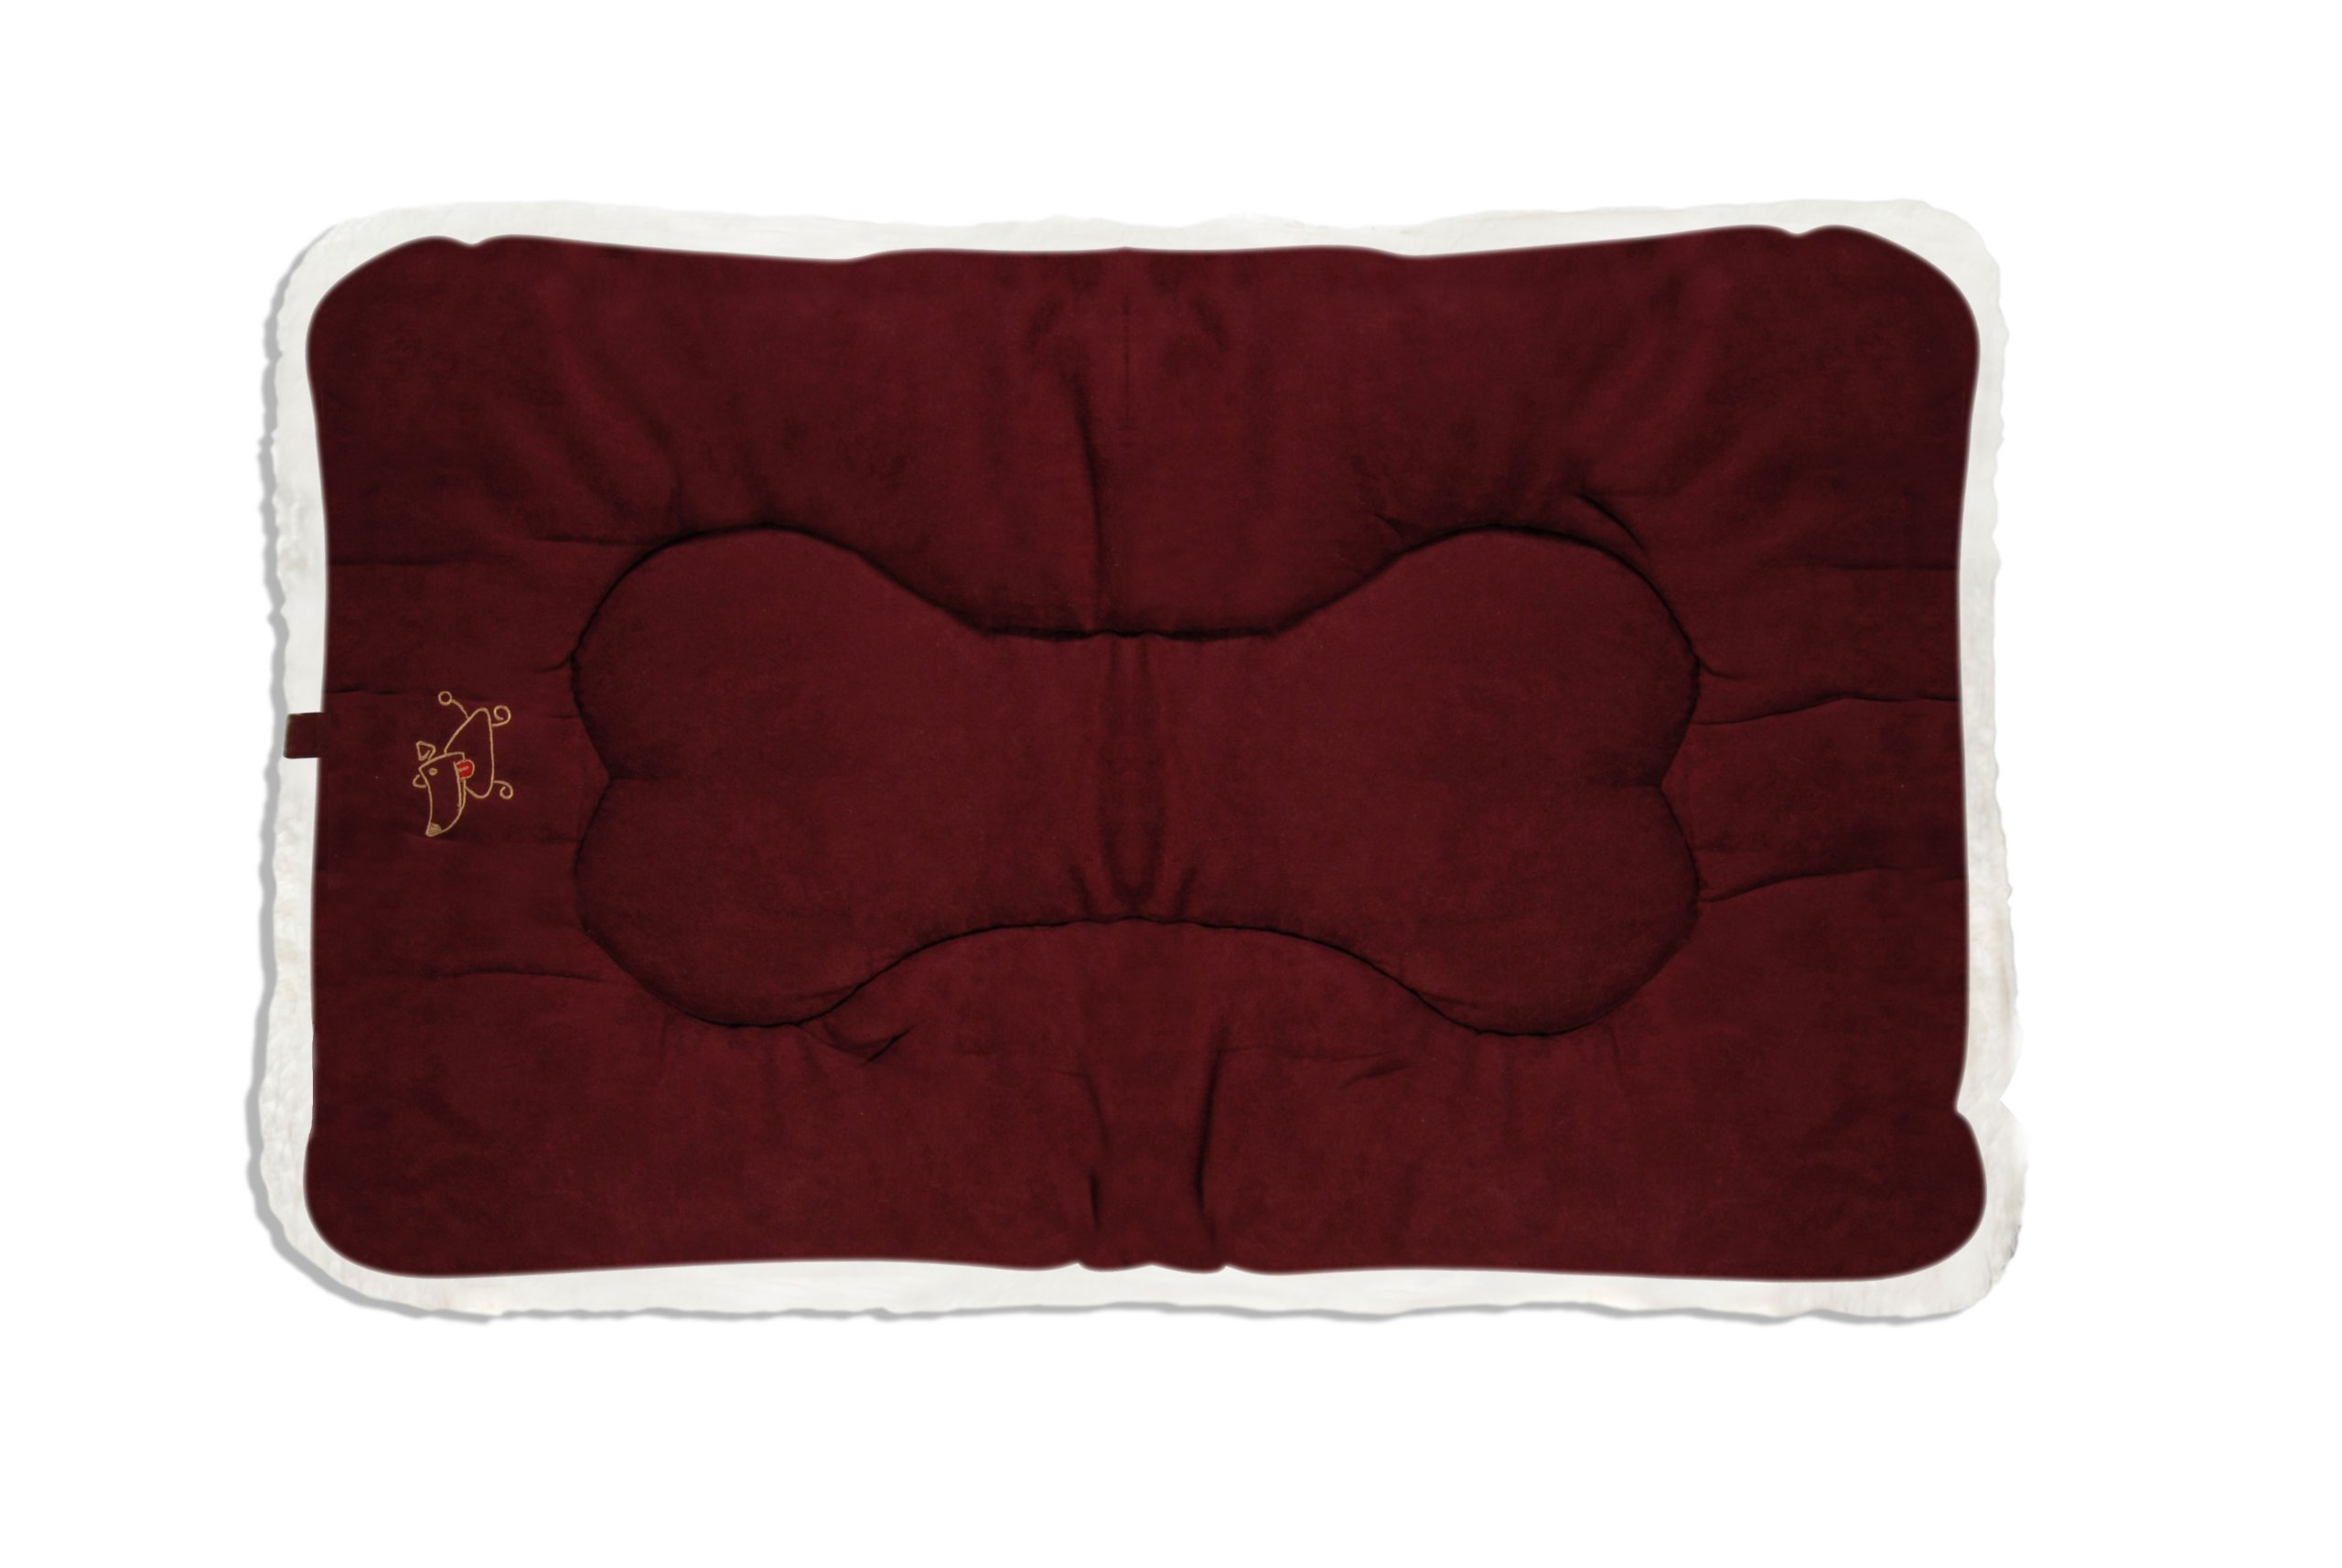 Best Pet Supplies Double-Sided Crate Mat, X-Large, Burgundy Suede